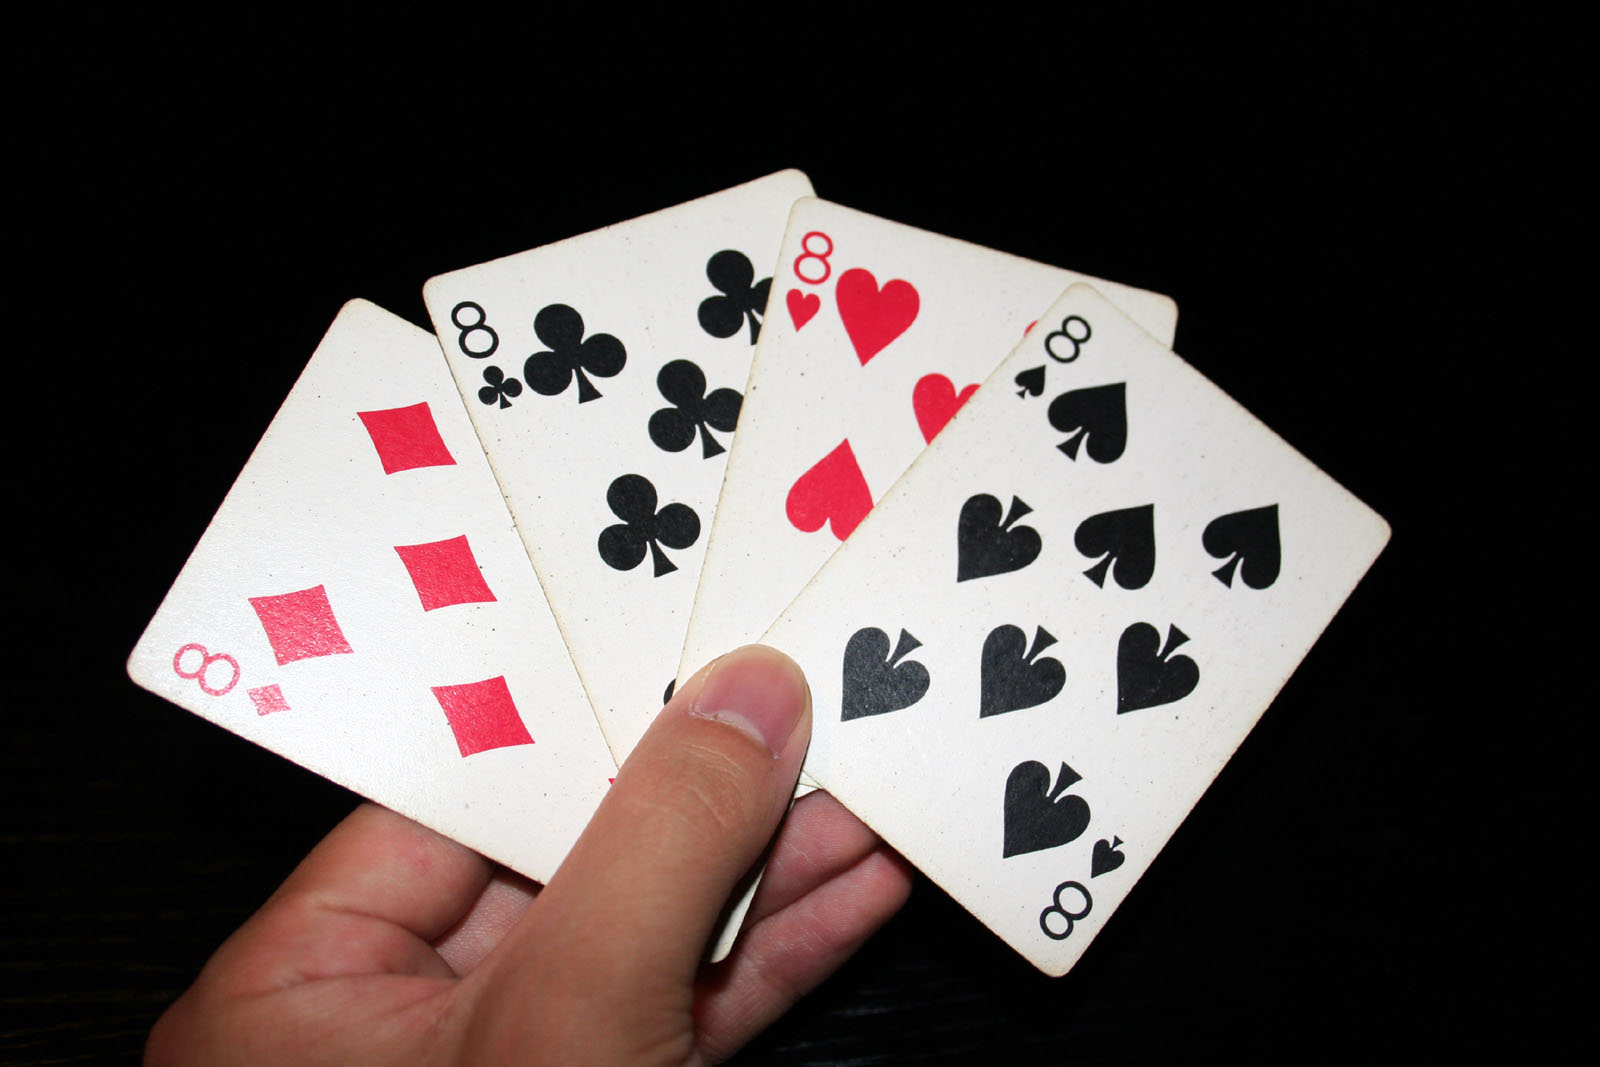 http://upload.wikimedia.org/wikipedia/commons/1/15/8_playing_cards.jpg